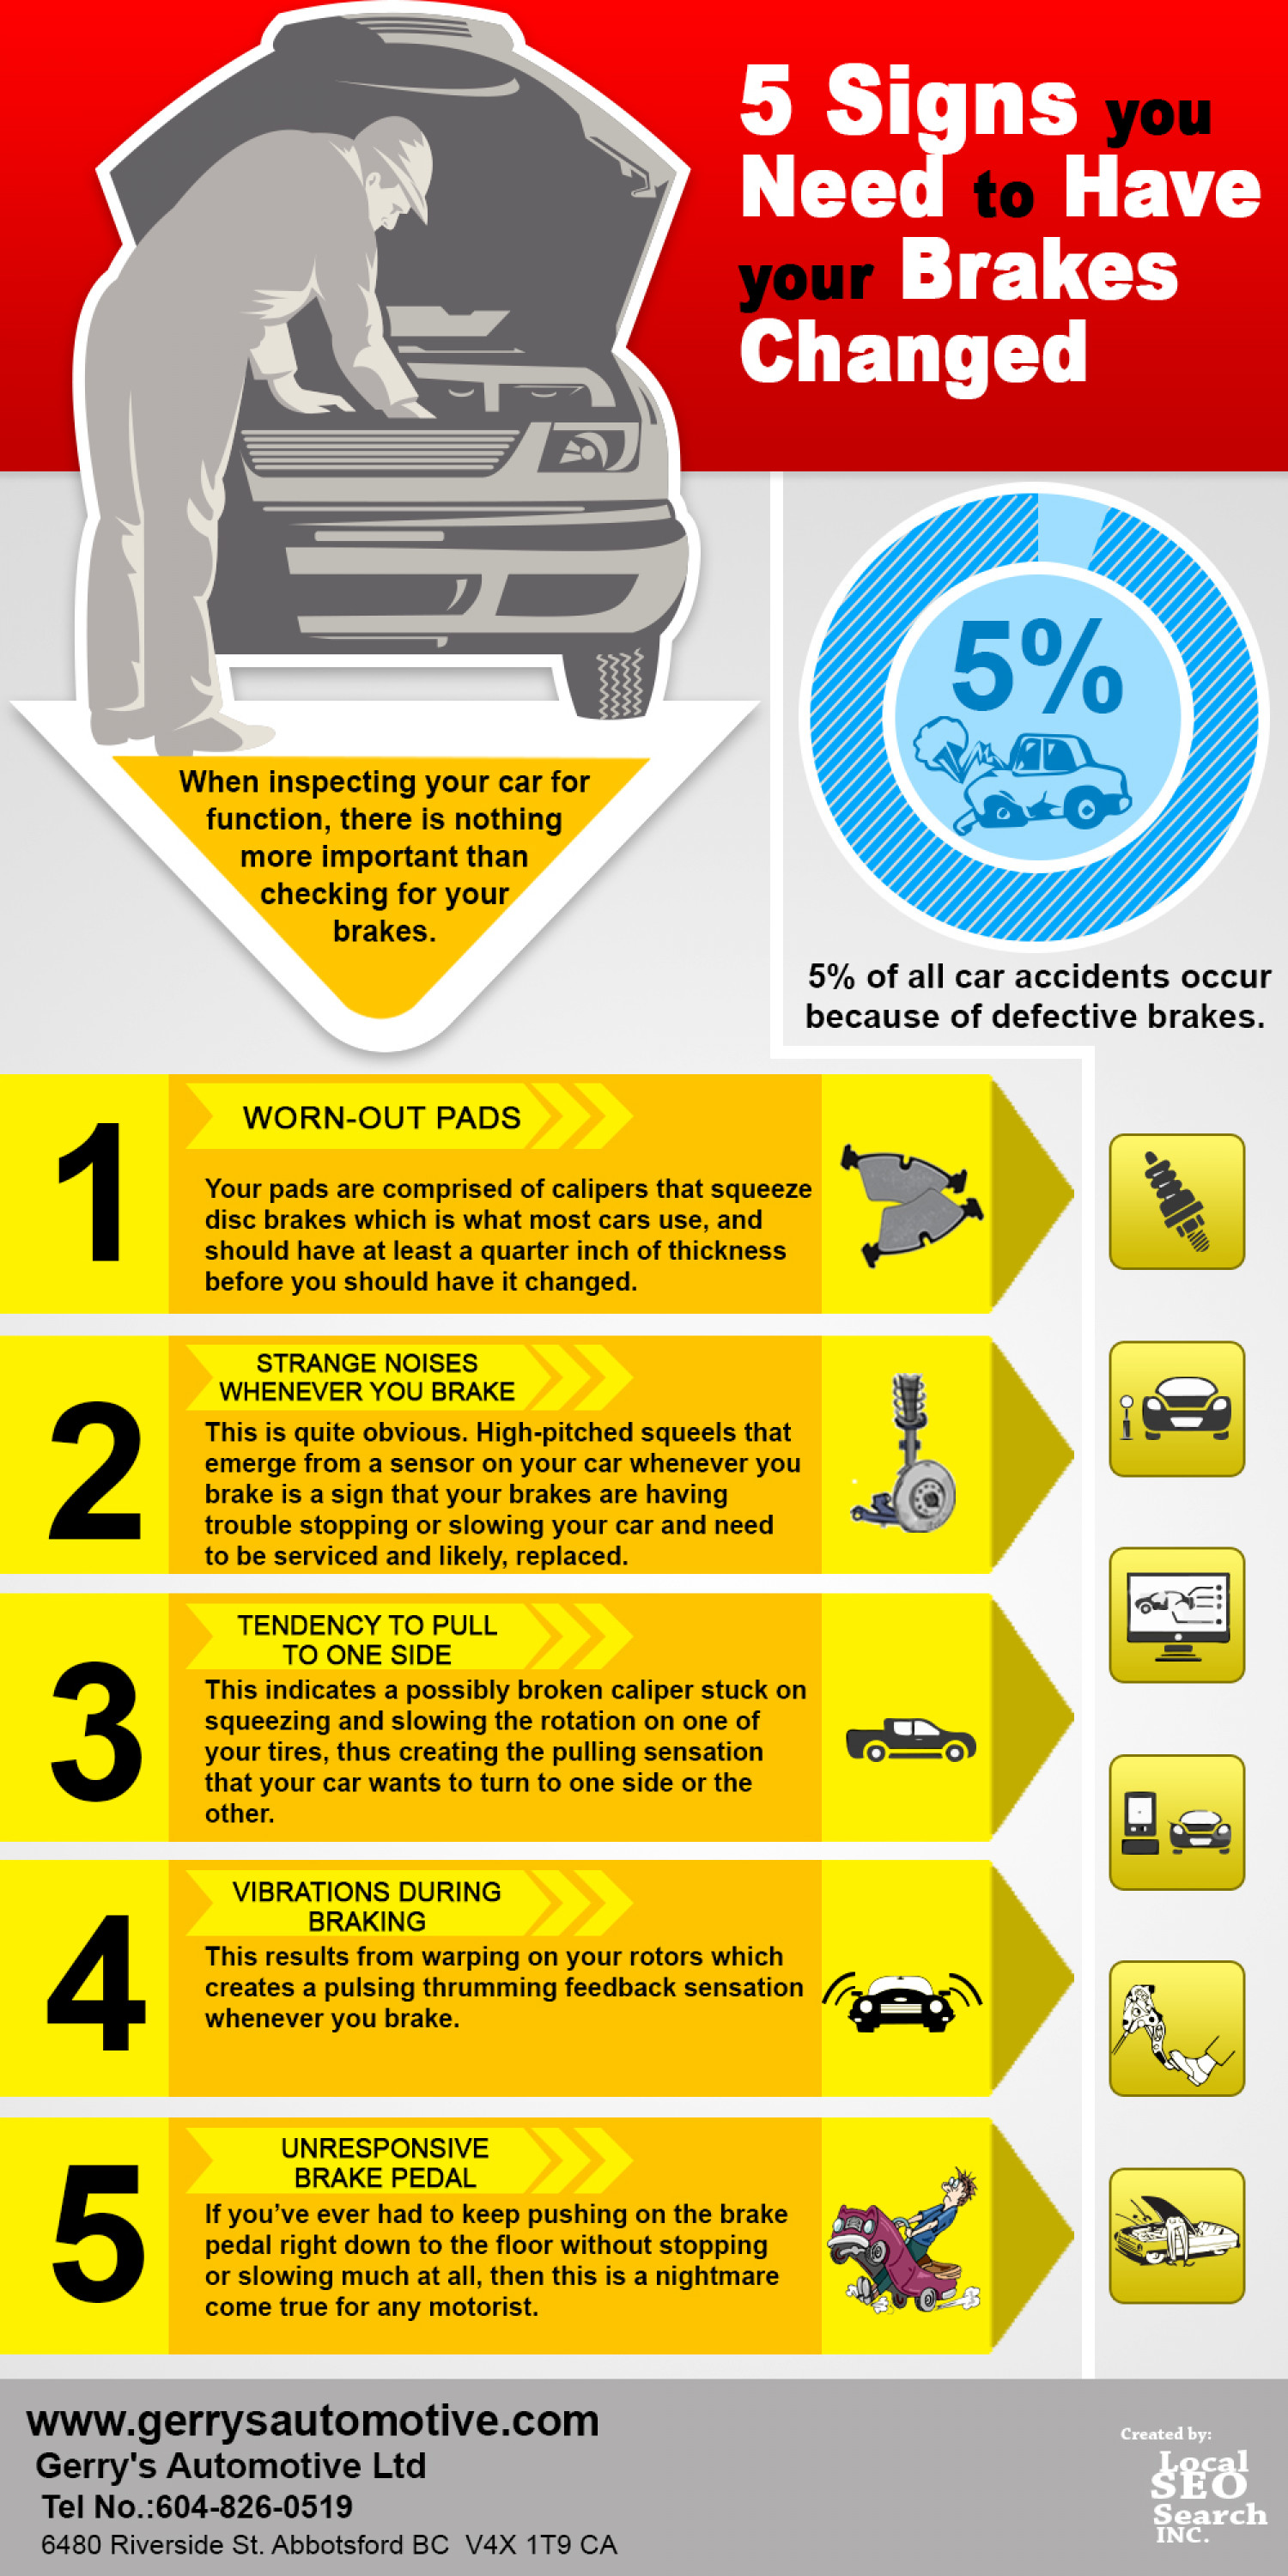 5 Signs You Need to Have Your Brakes Changed Infographic